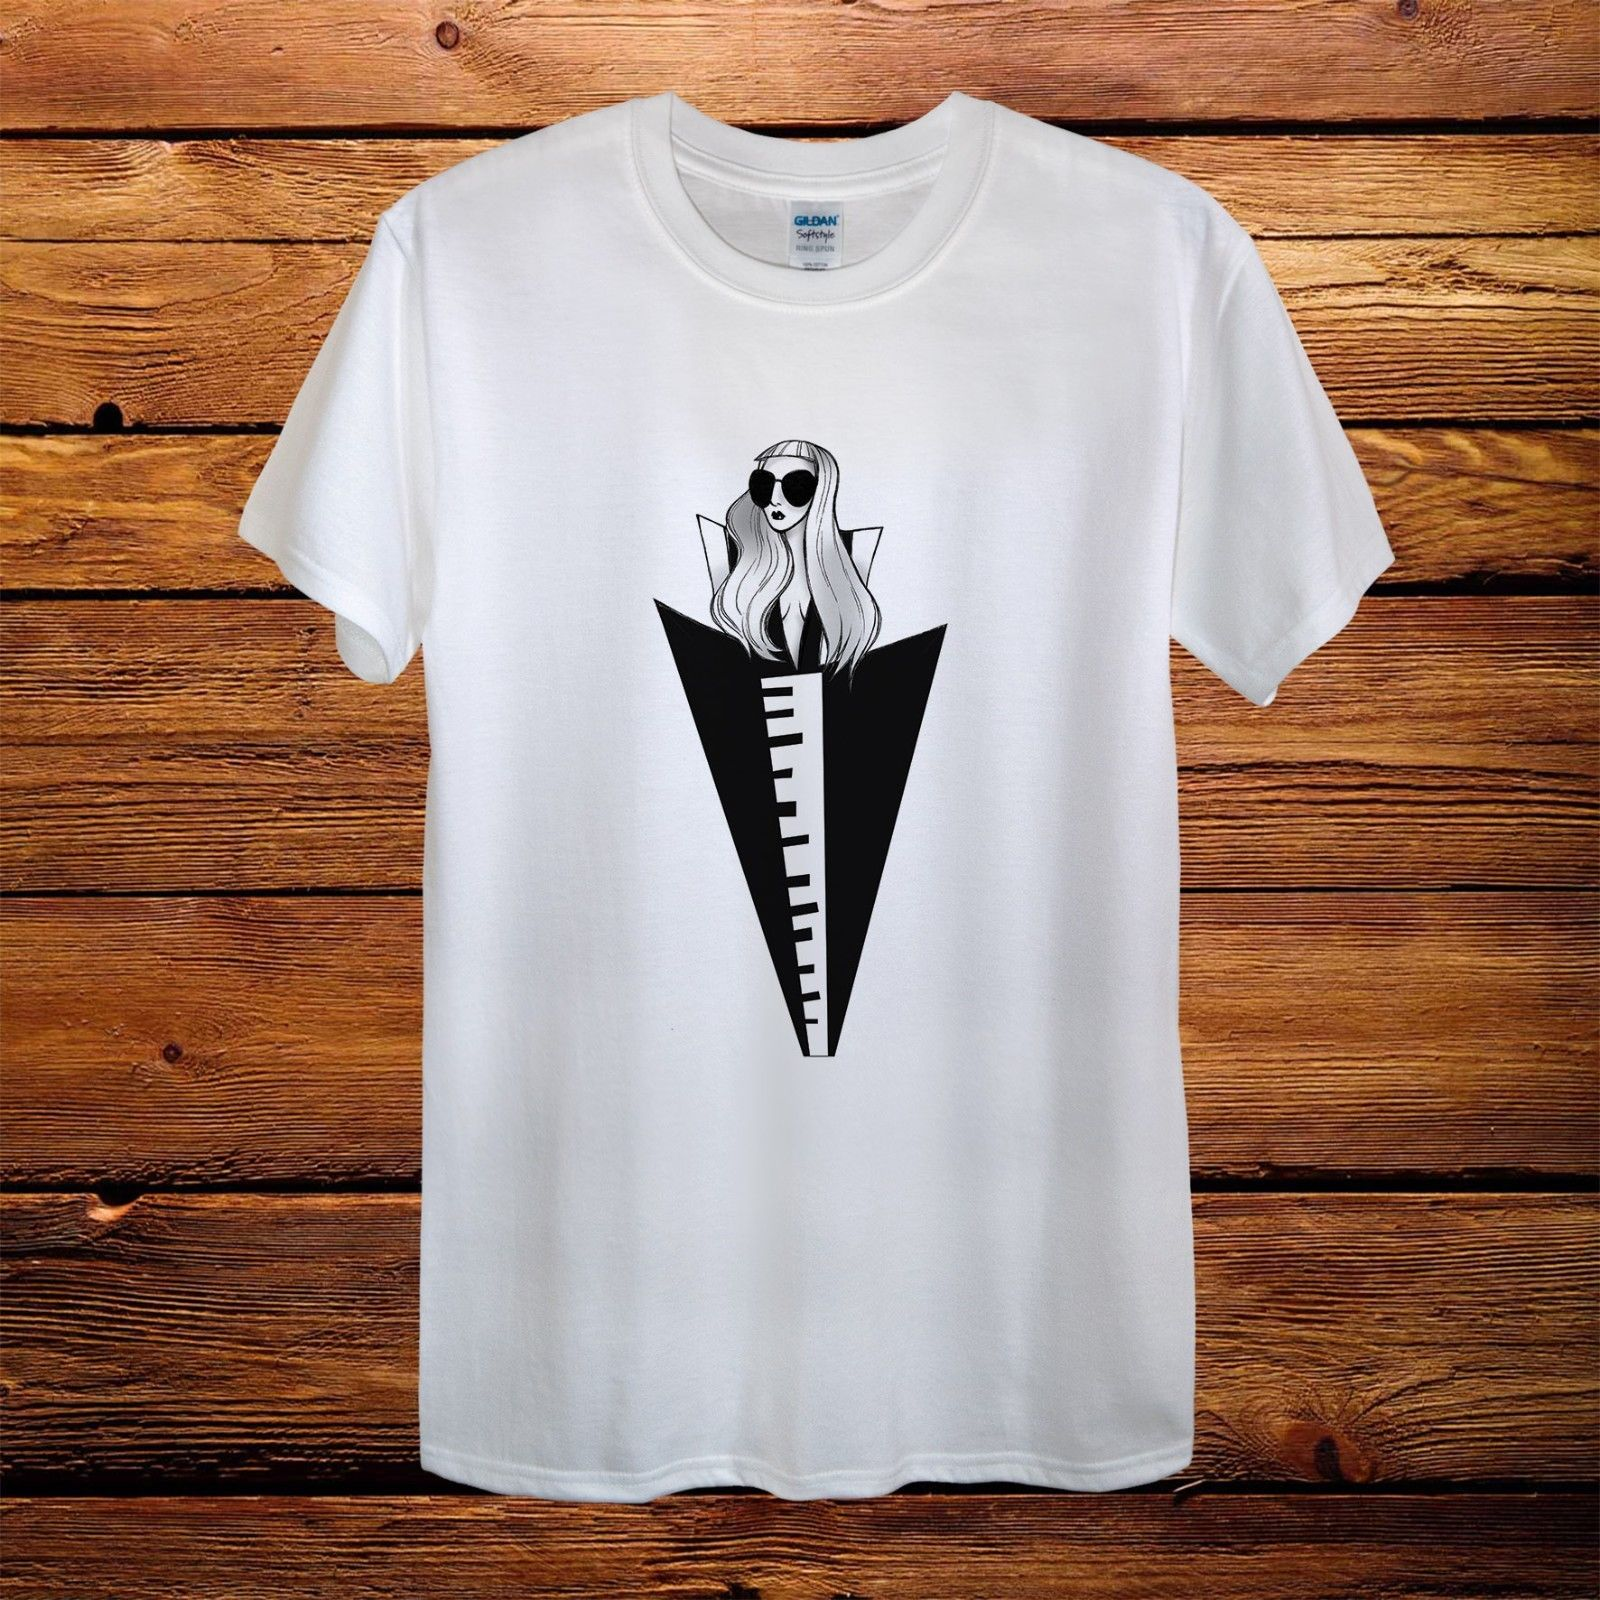 Lady Gaga Top Design T-Shirt Men Unisex Women Fitted World Tour Gift Joanne